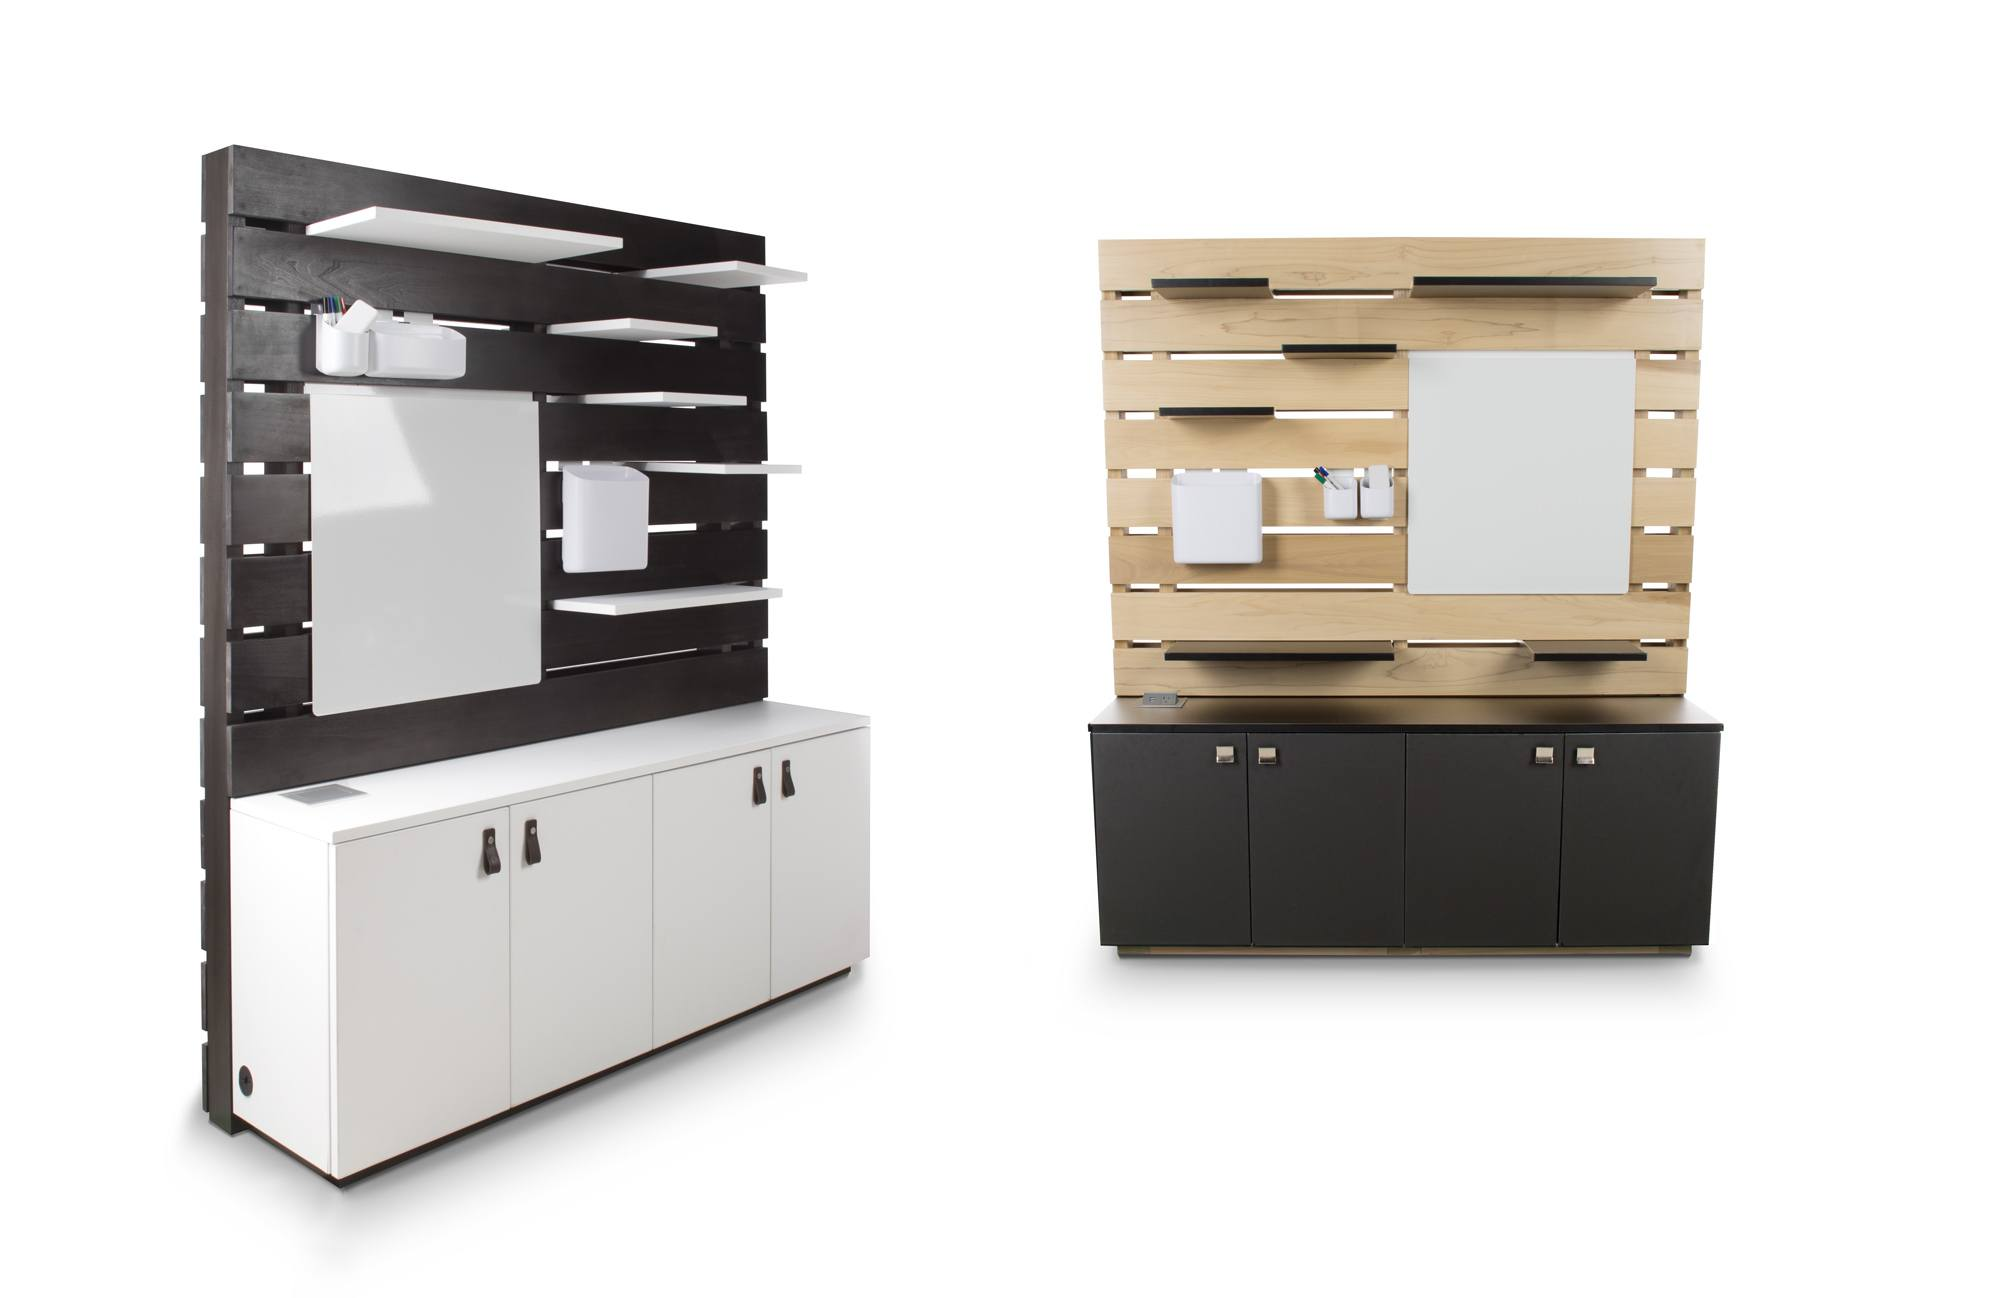 Two products, both Pallet, a space division product